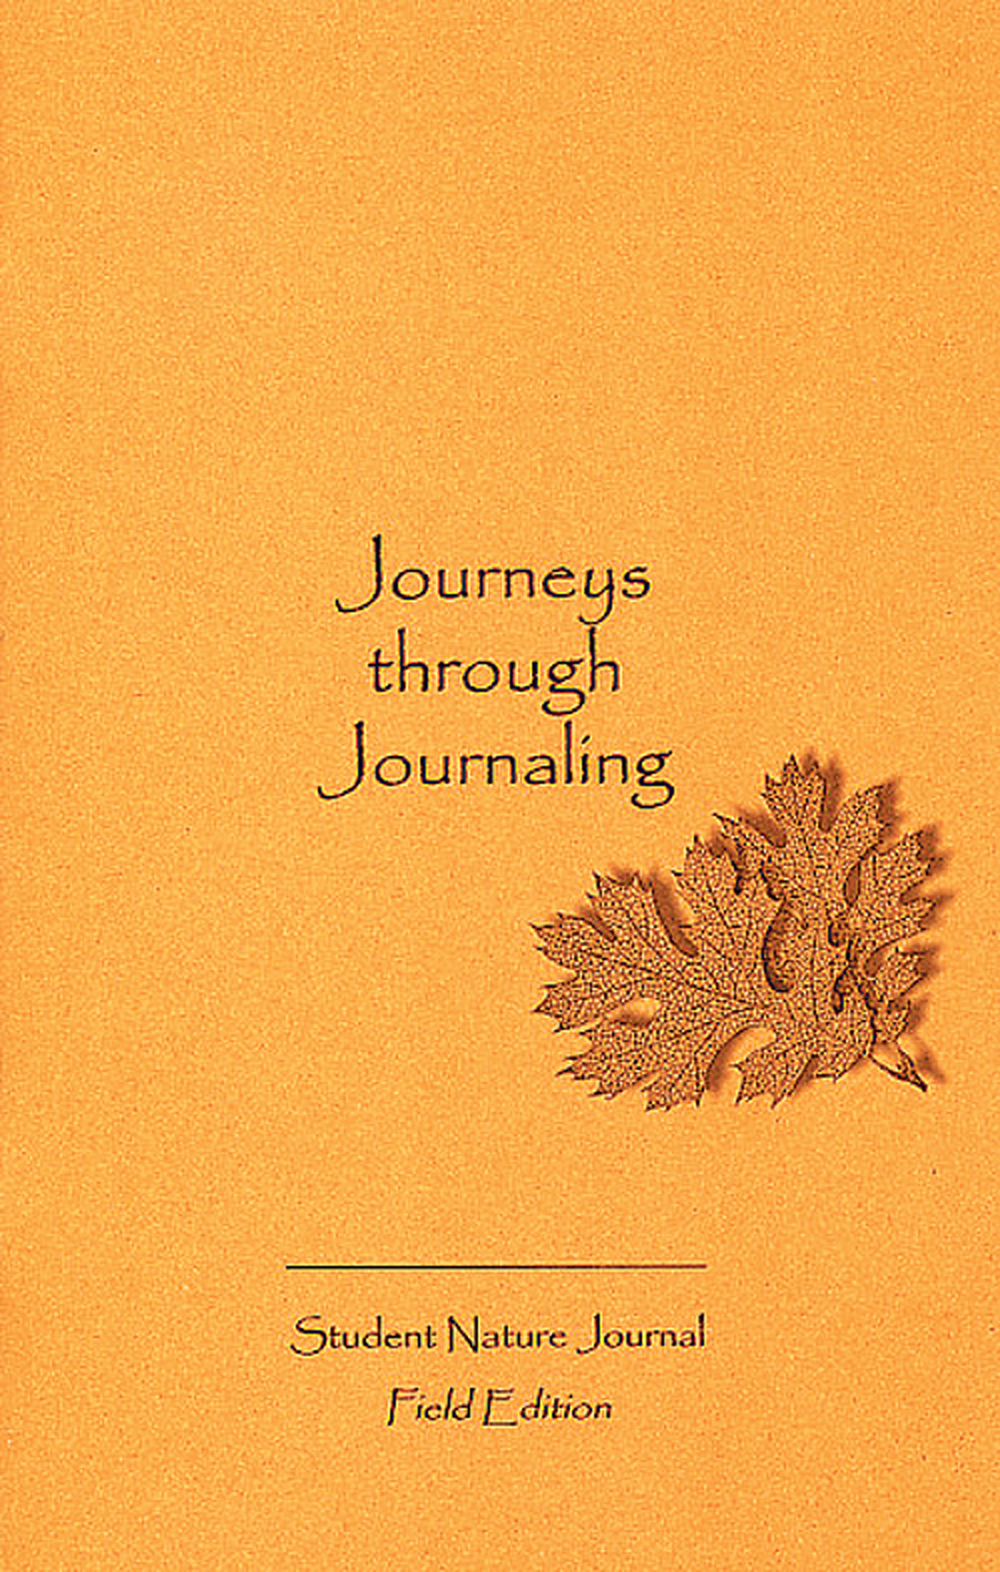 Journeys Through Journaling: Student Nature Journal (Field Edition)